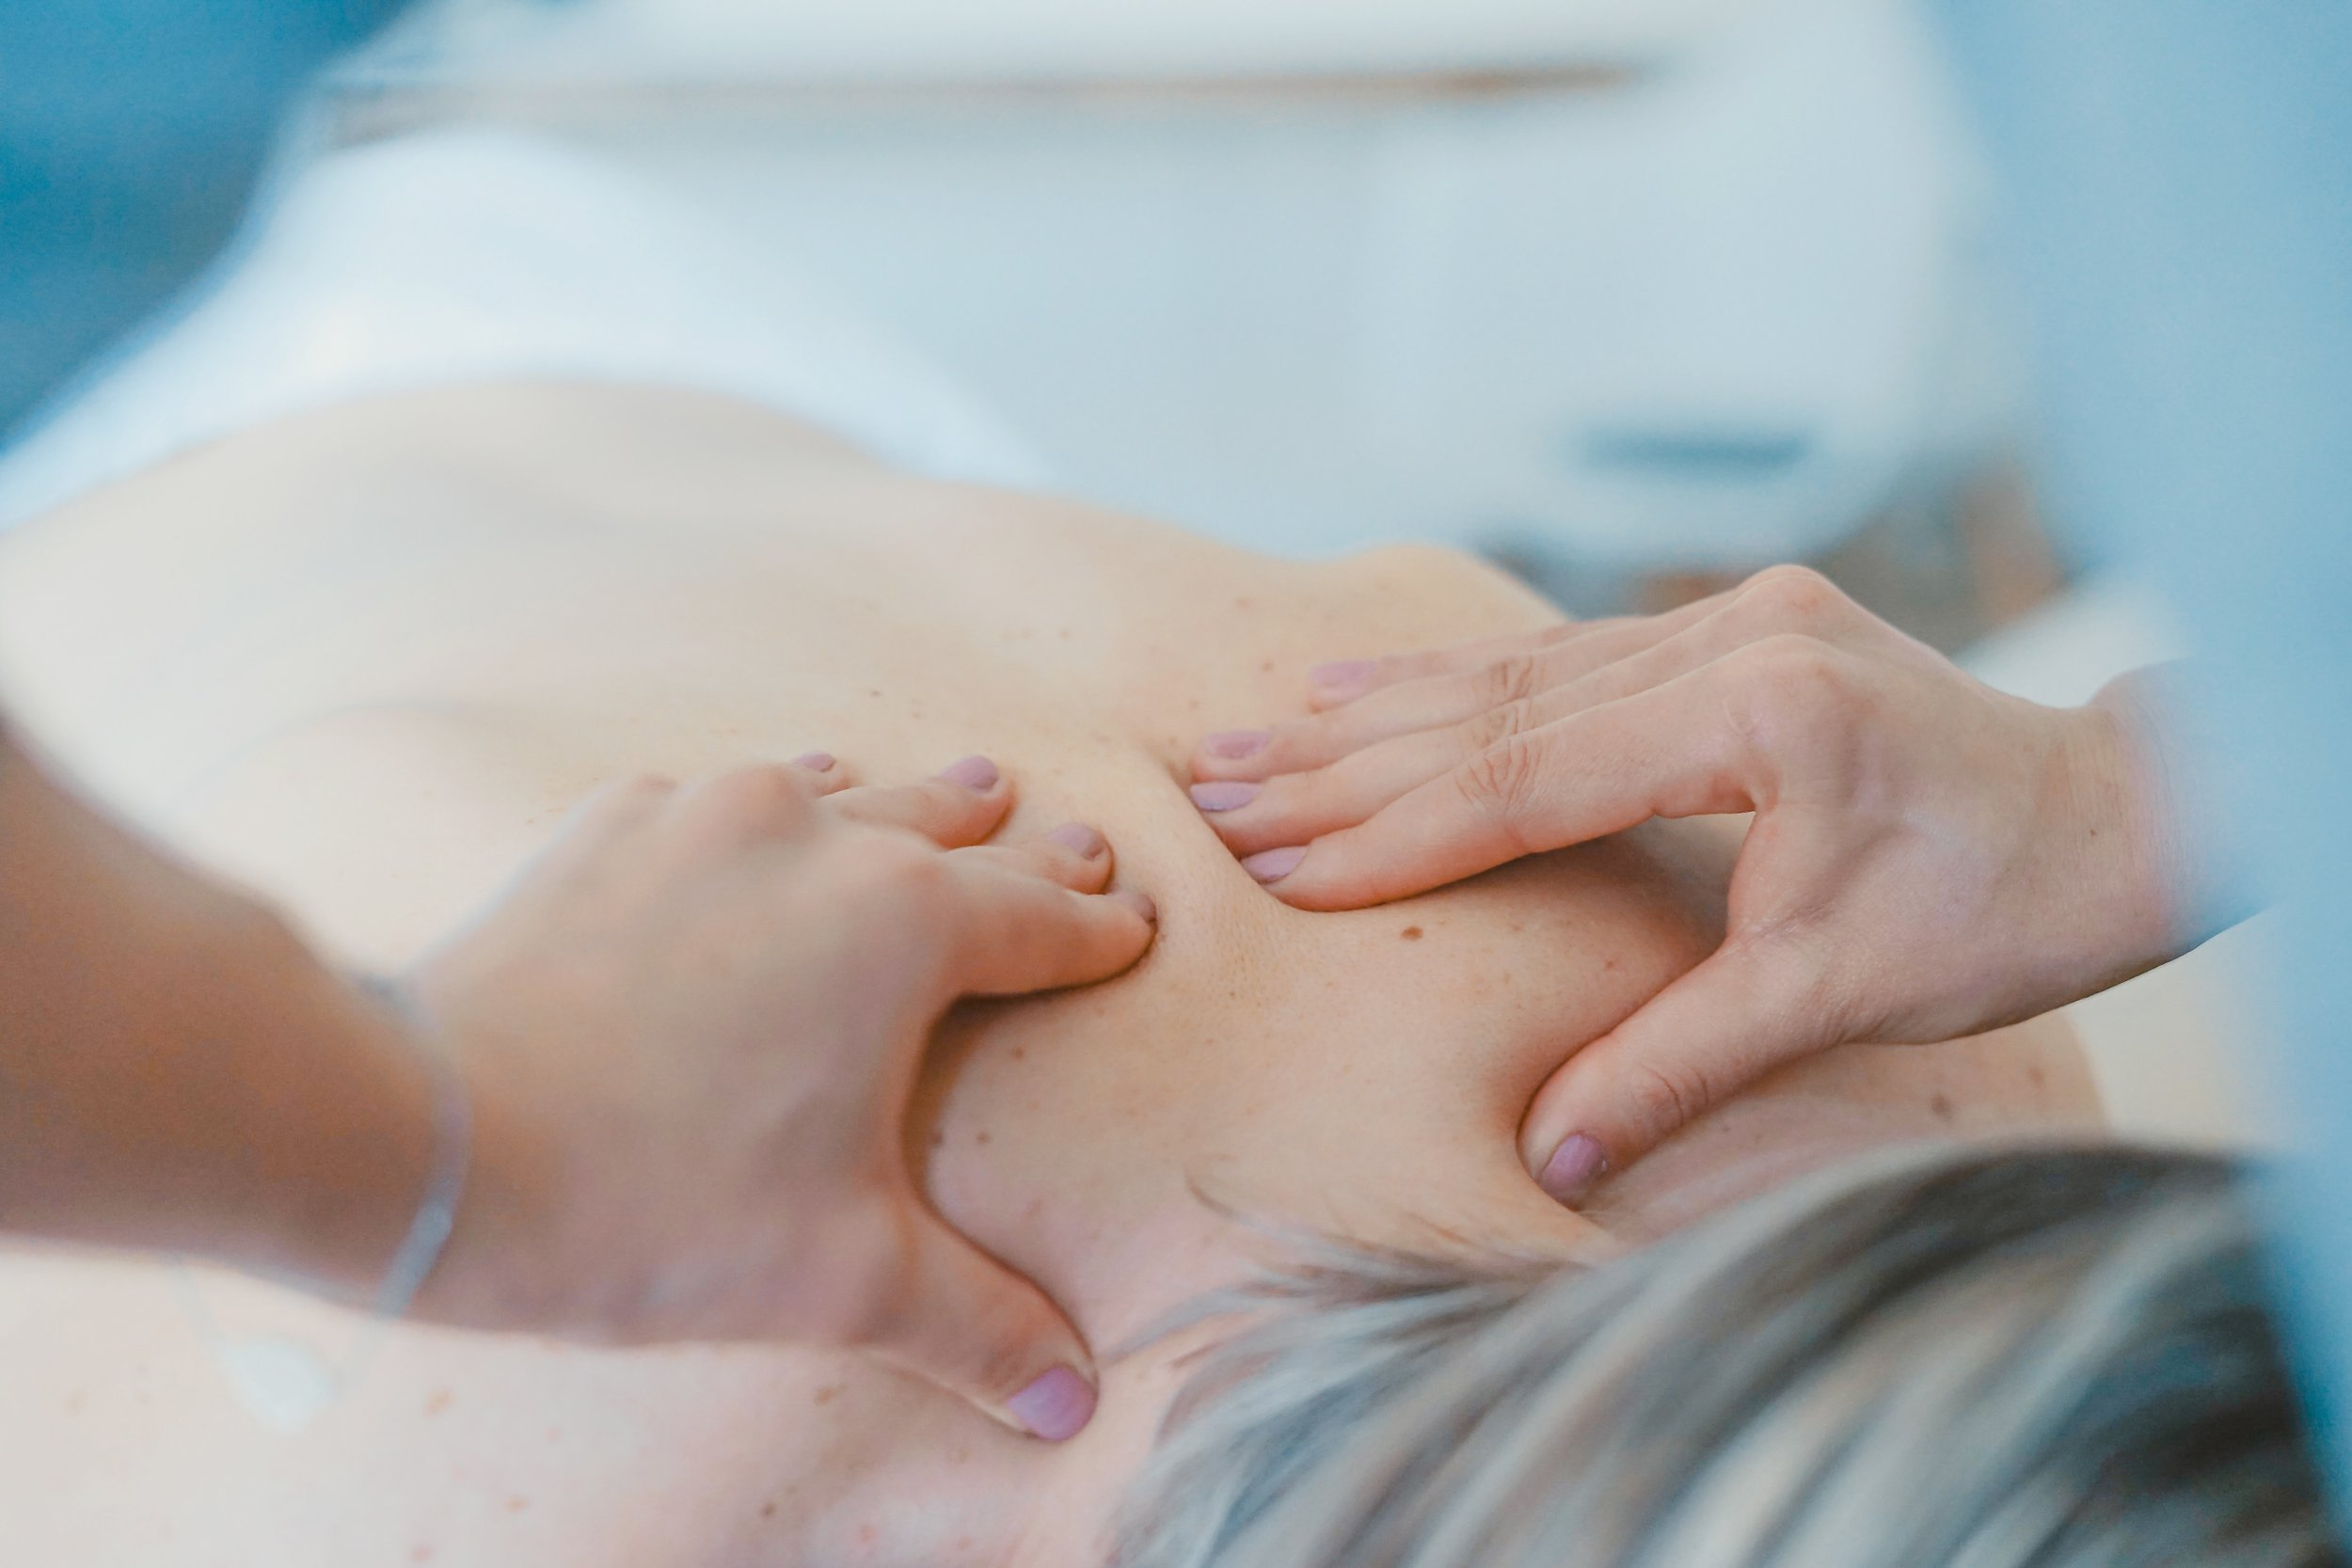 Spa Rockaway offers a variety of unique massages designed to relax and rejuvenate year around.